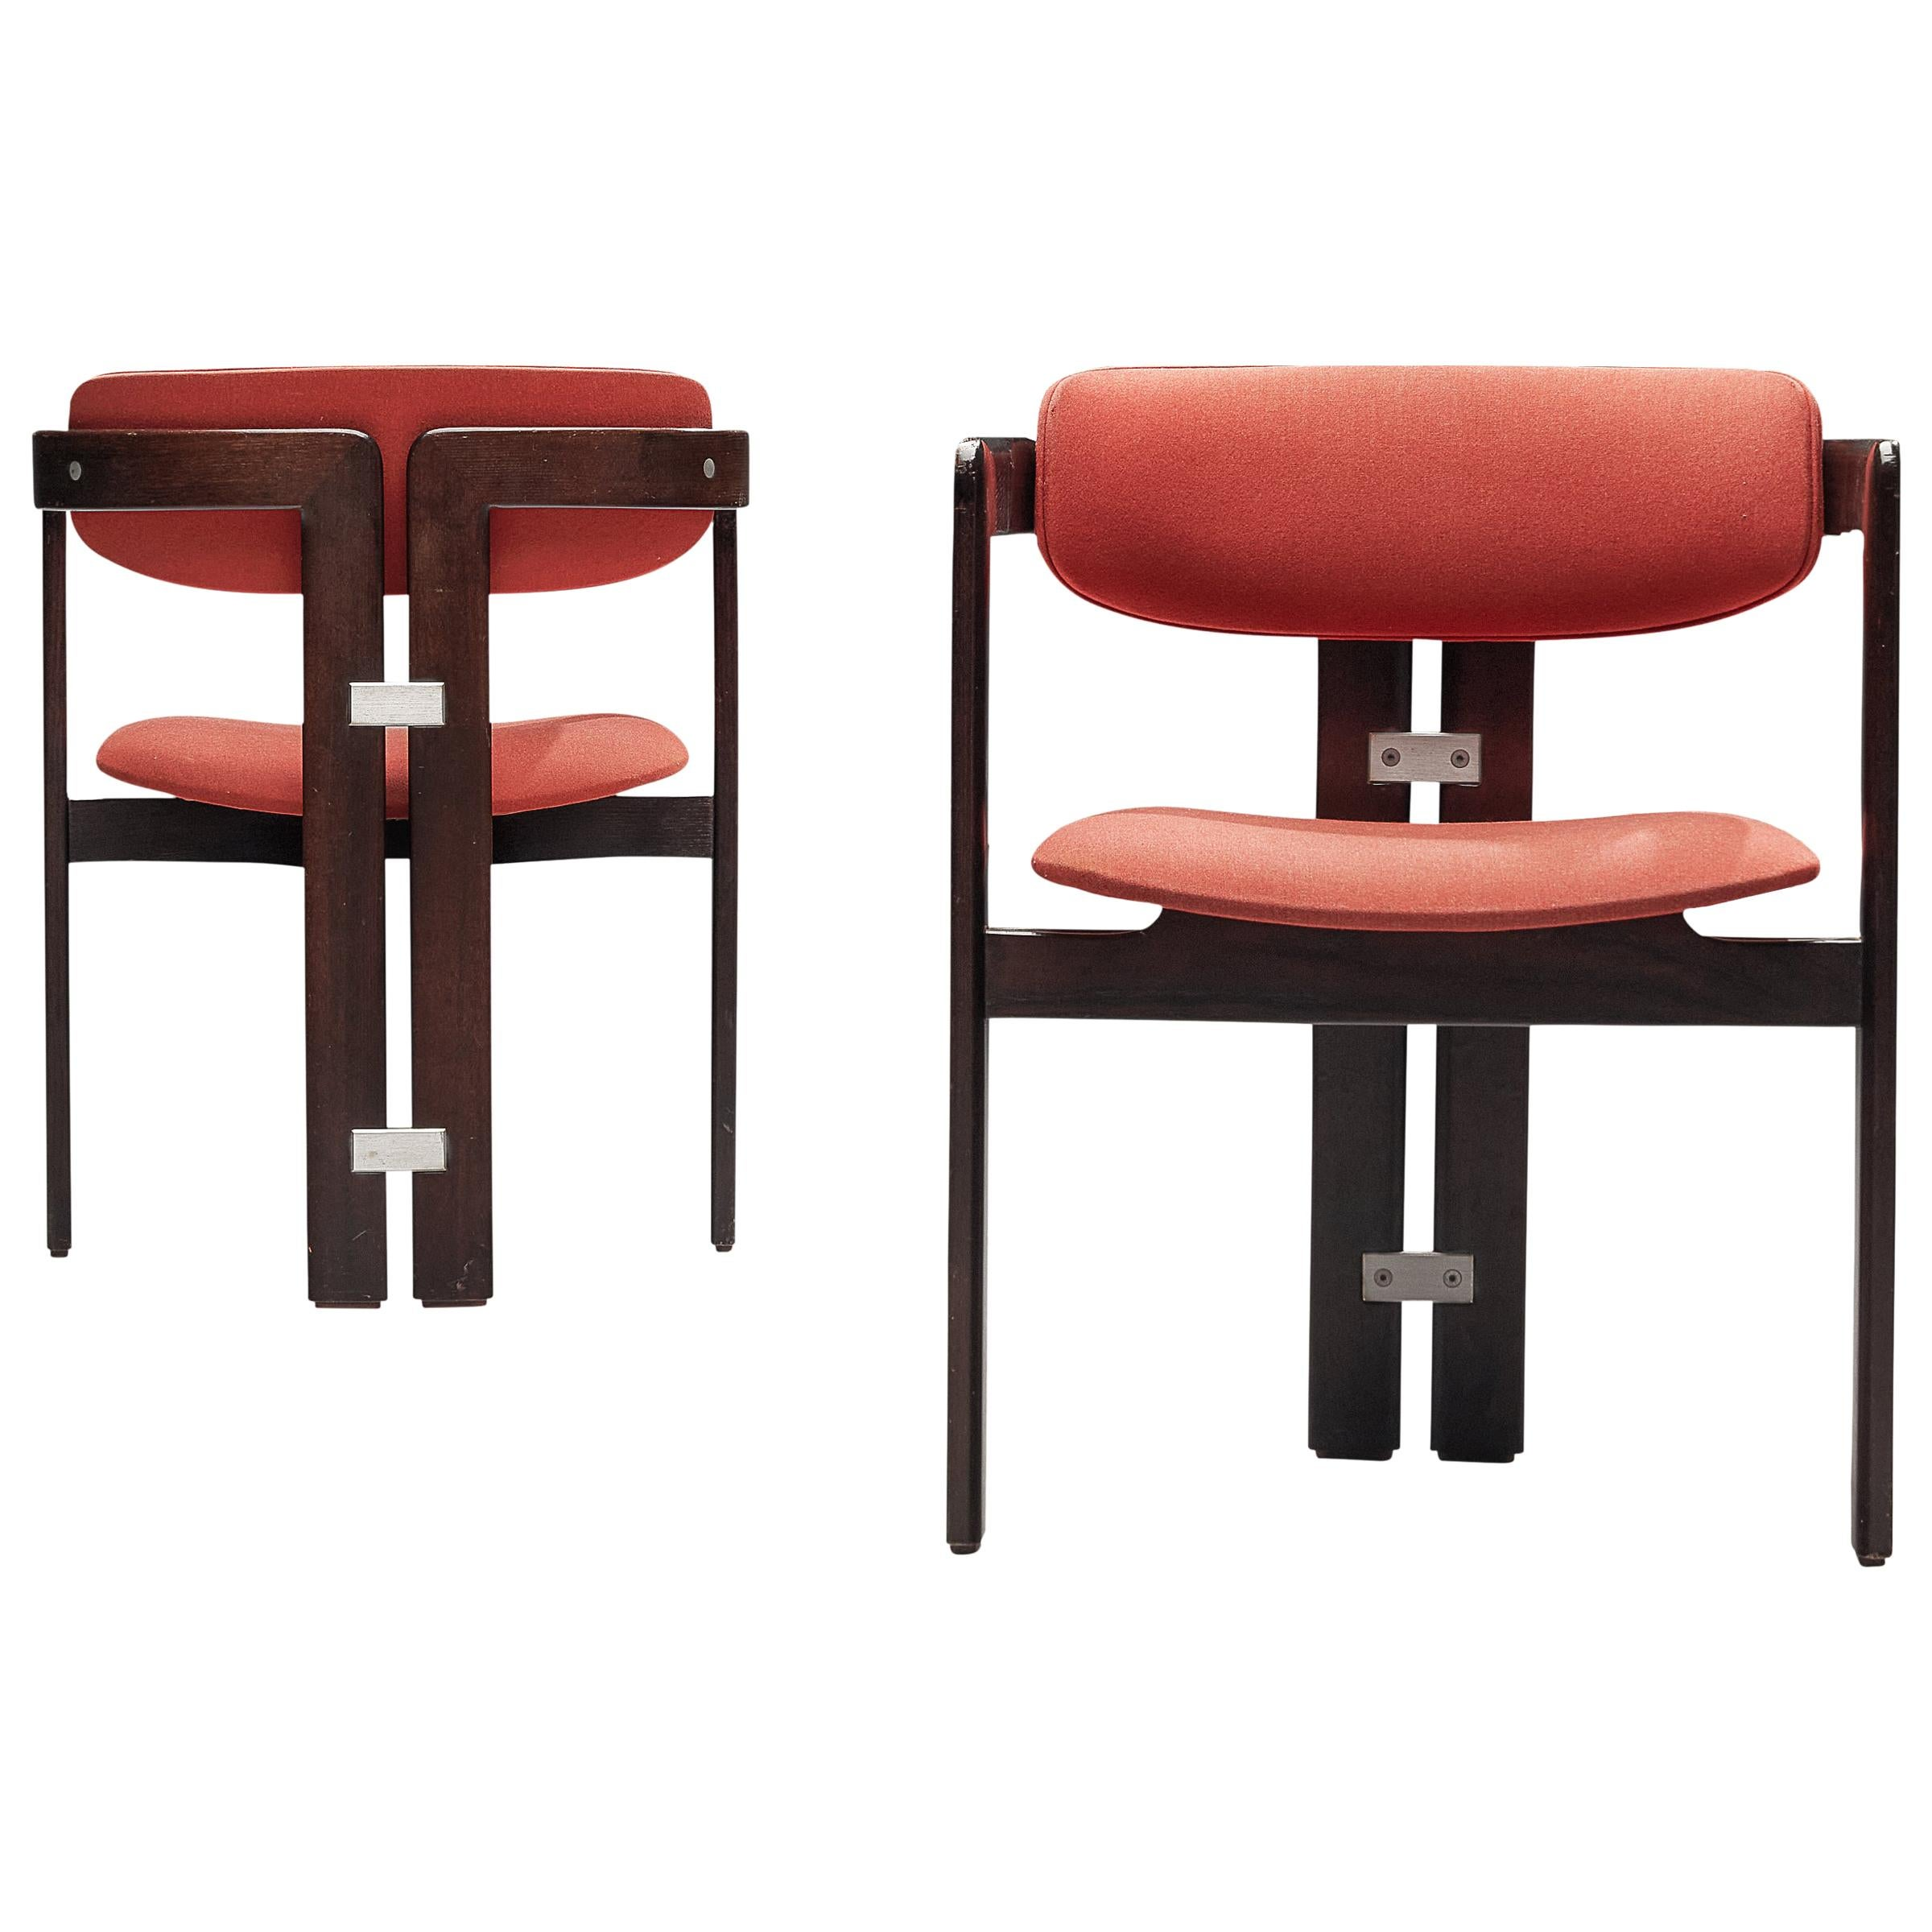 Augusto Savini Pair of 'Pamplona' Dining Chairs in Red Upholstery